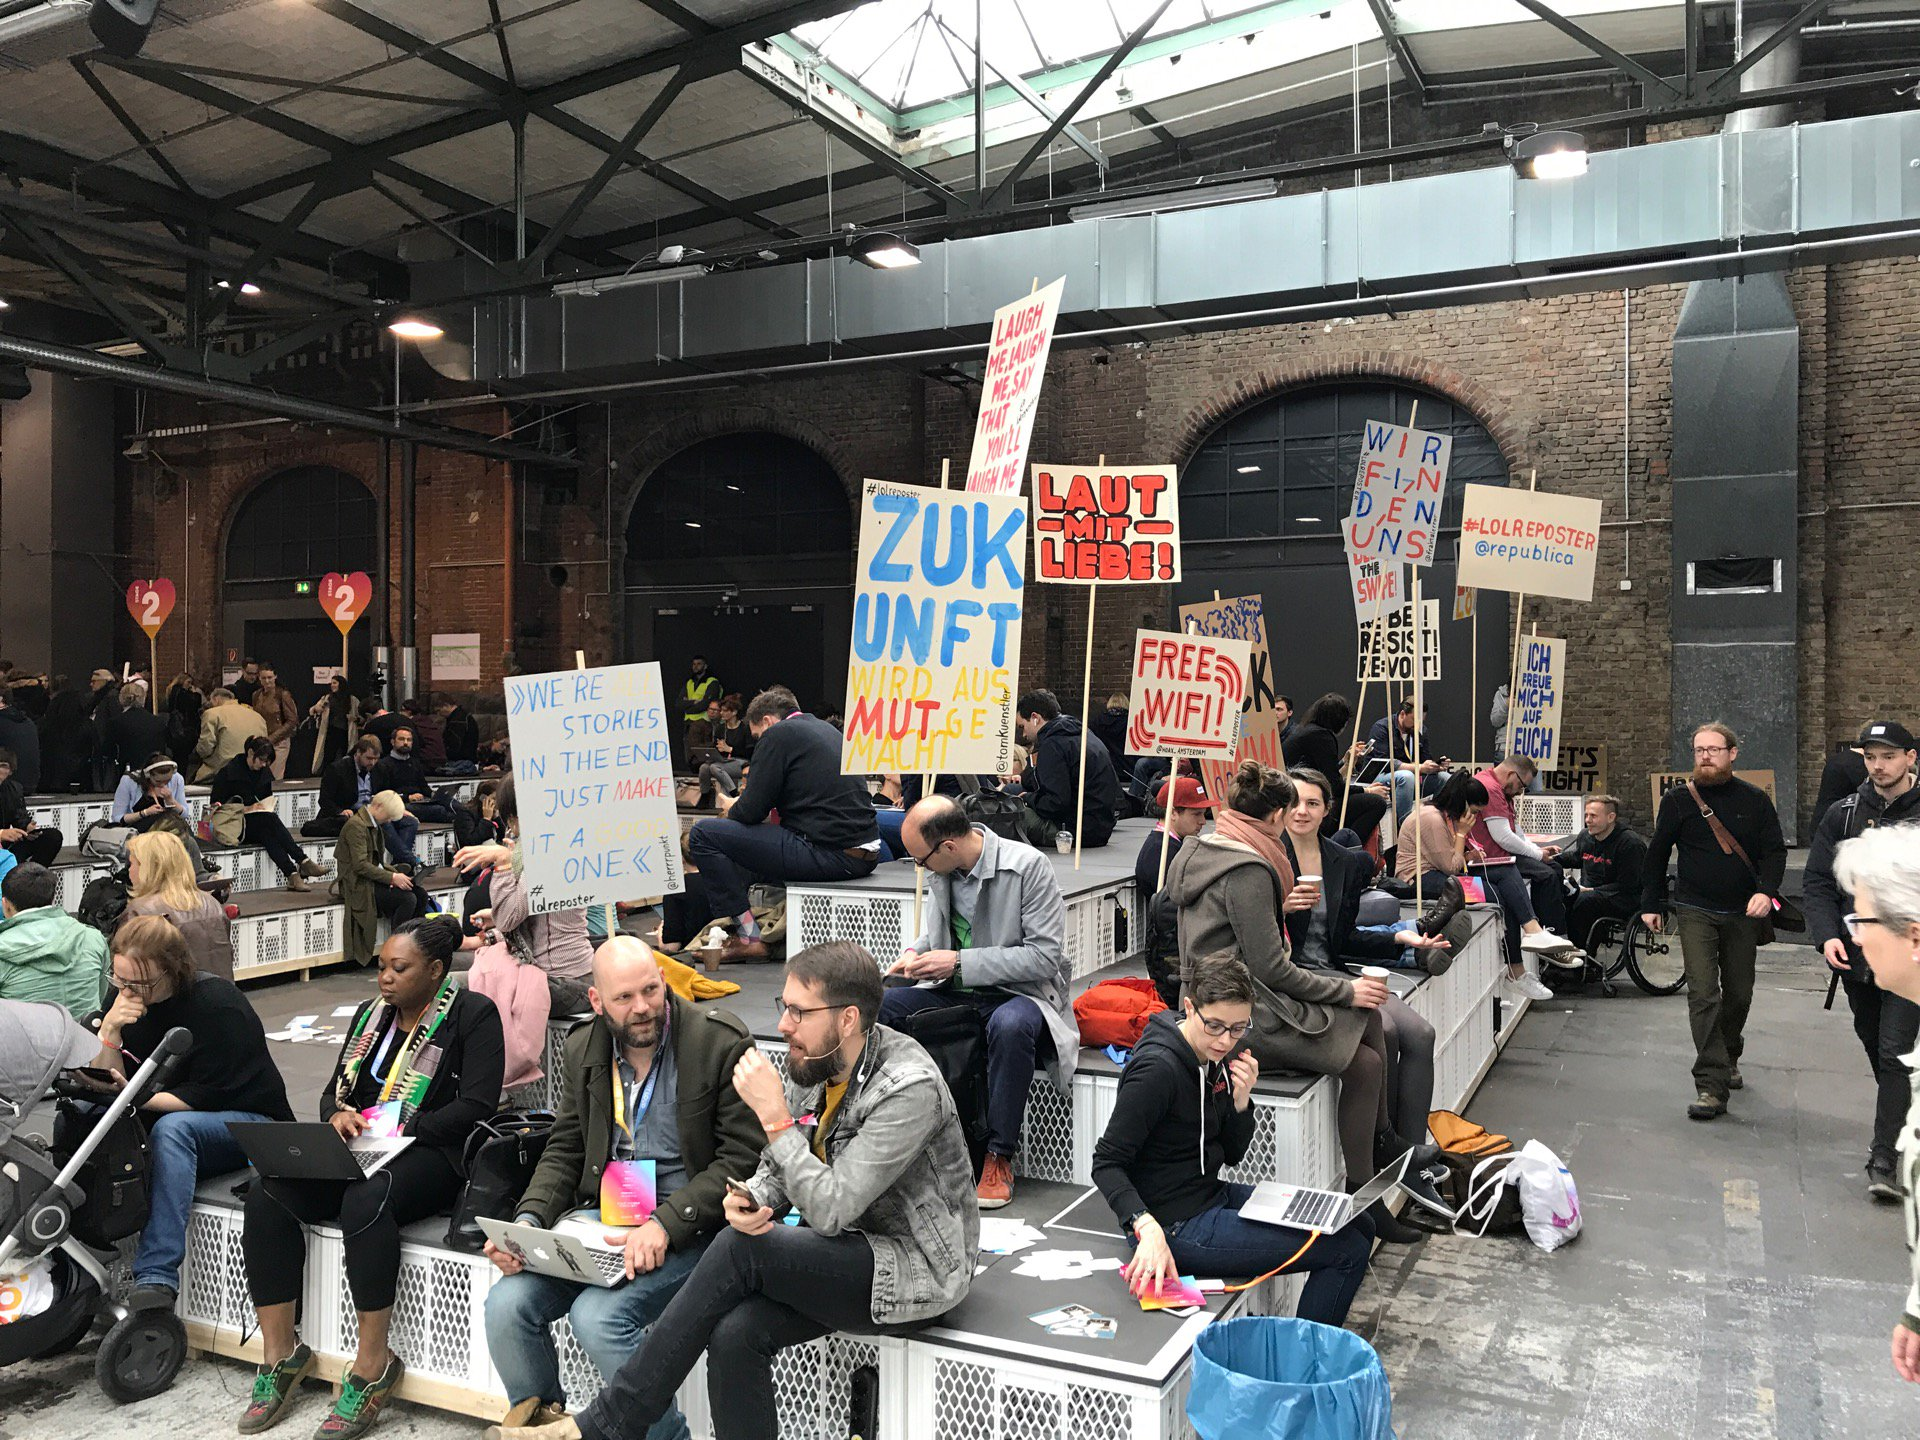 Checked in #rp17 #berlindwm (@ STATION-Berlin in Berlin w/ @lukizzl) https://t.co/yMA7NgyIId https://t.co/oGBpFXxXsA